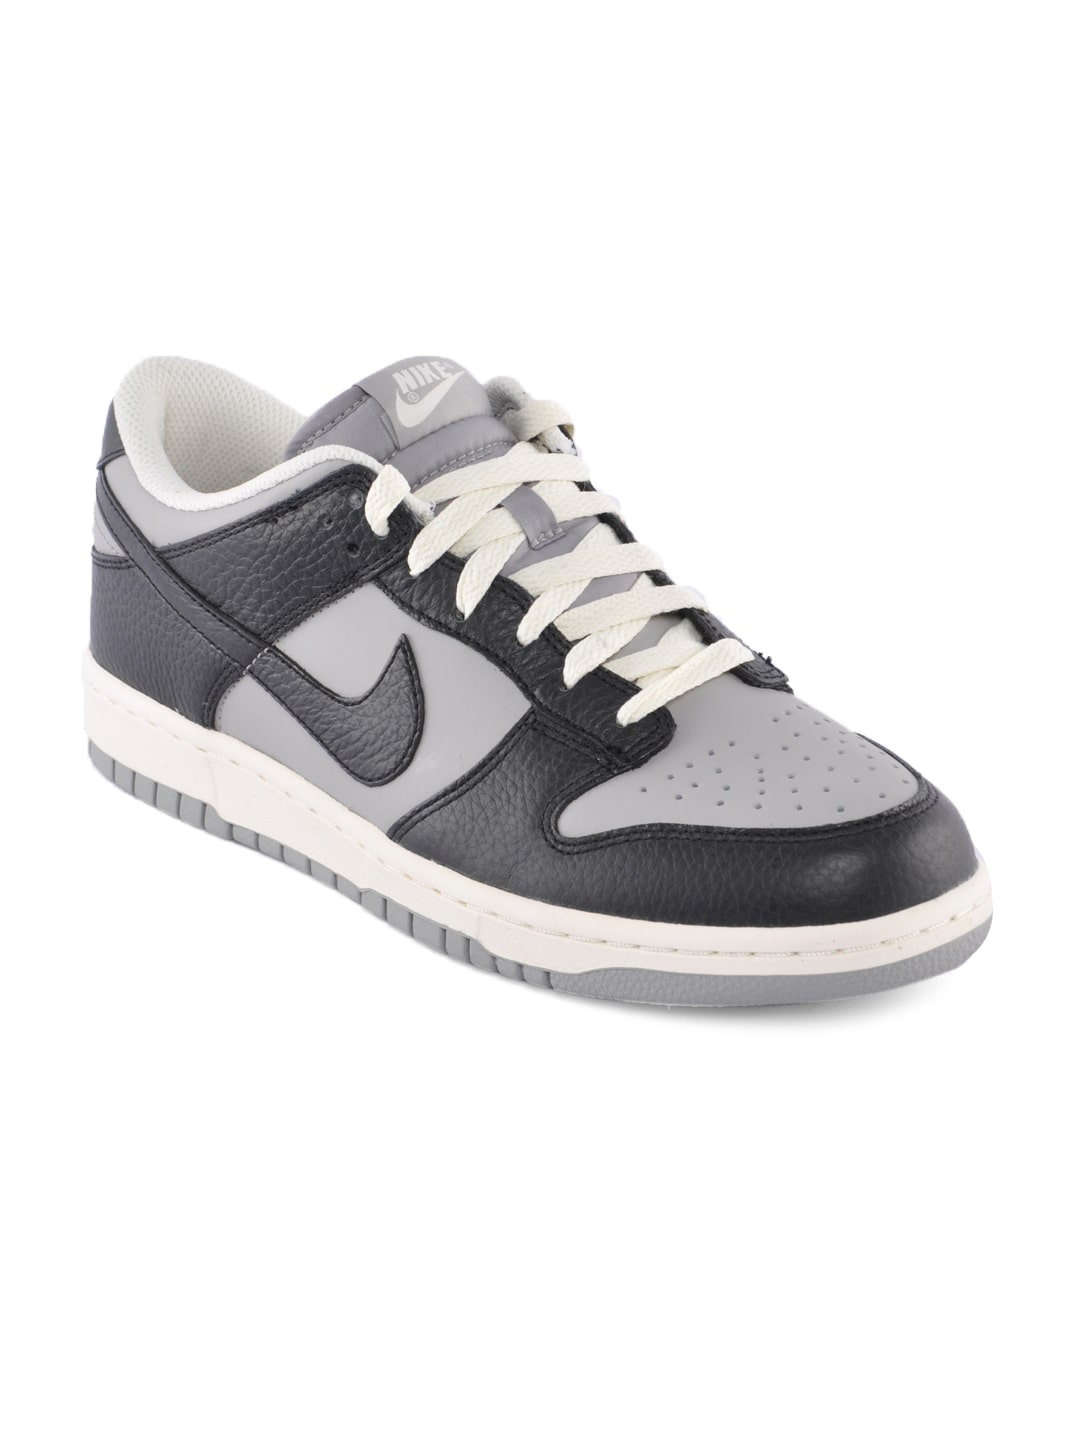 Nike Shoes Low Price In India